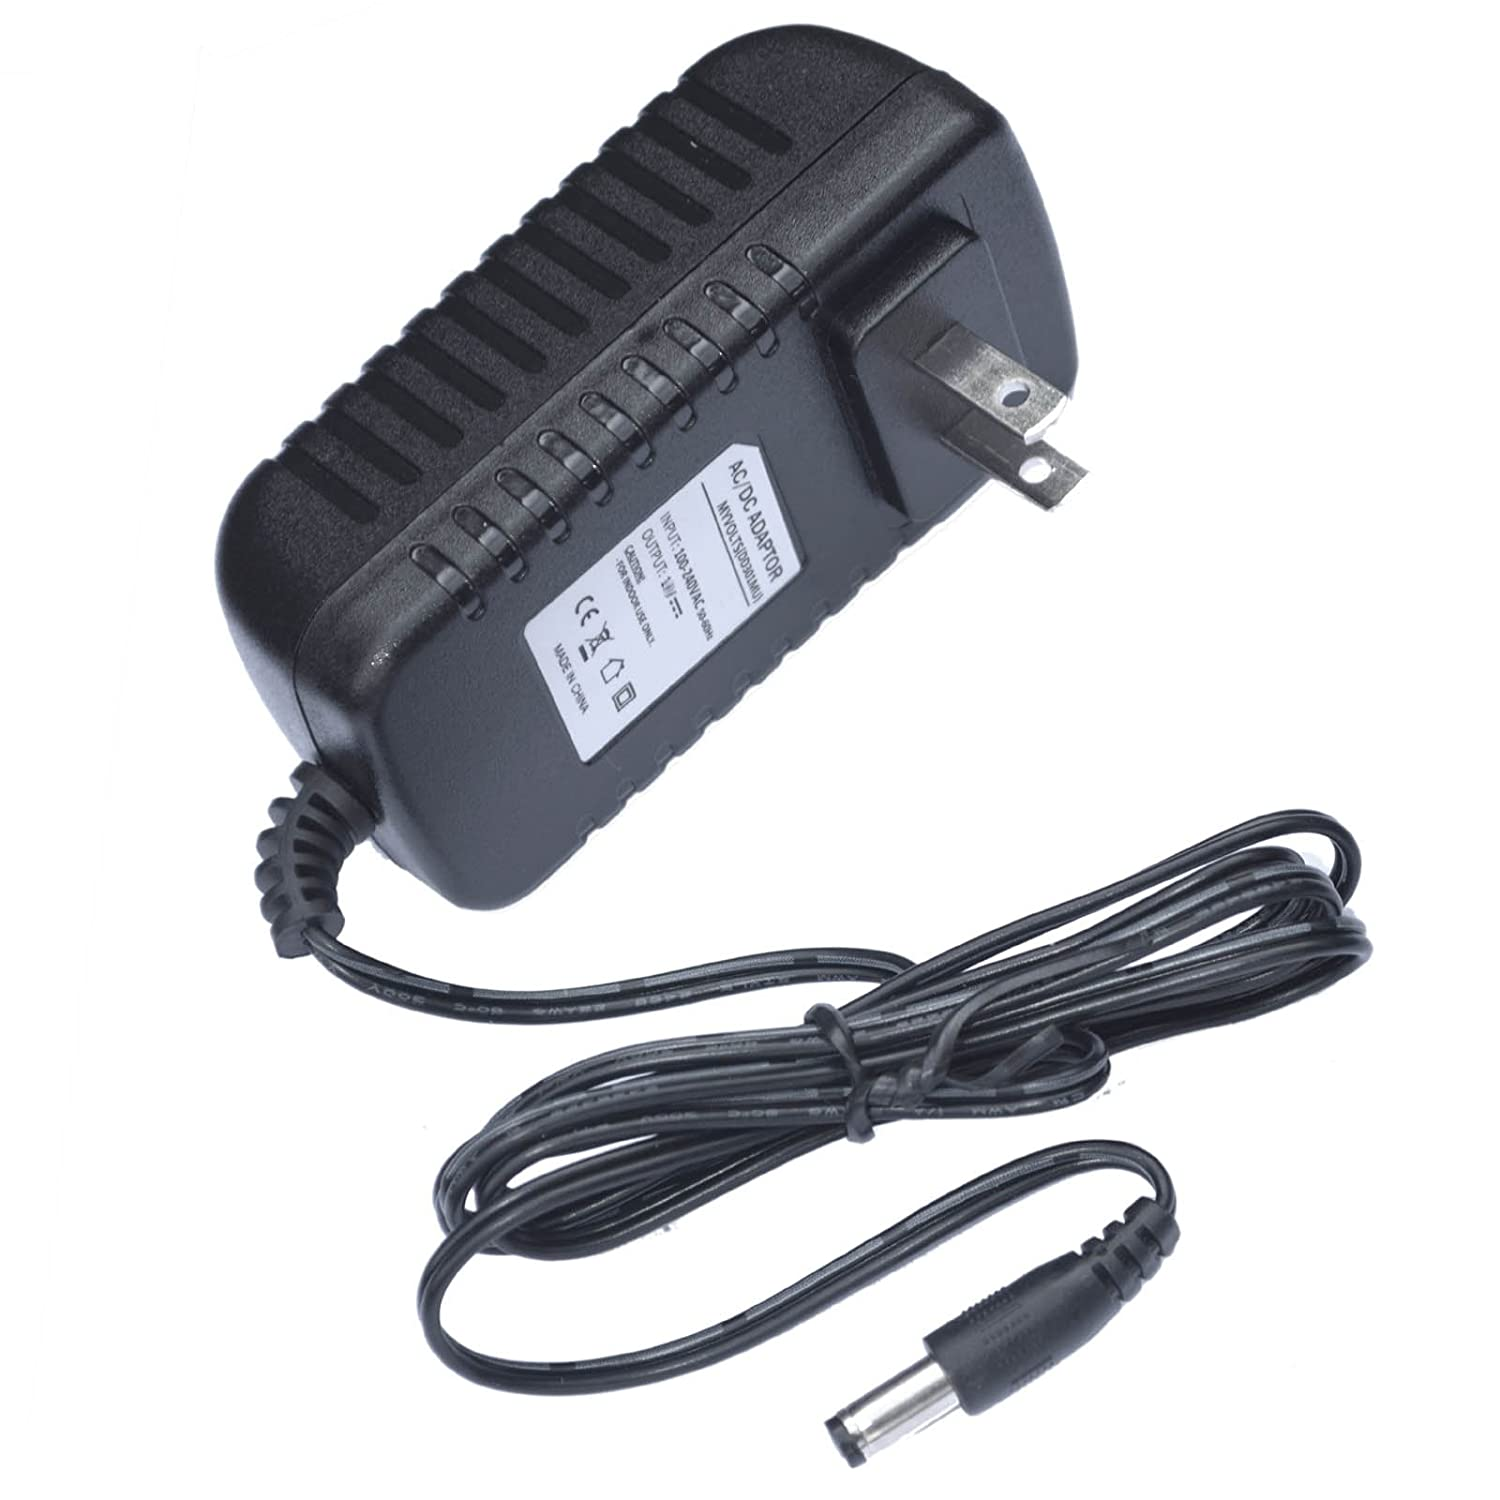 9V Casio LK-220 Keyboard replacement power supply adaptor - US plug